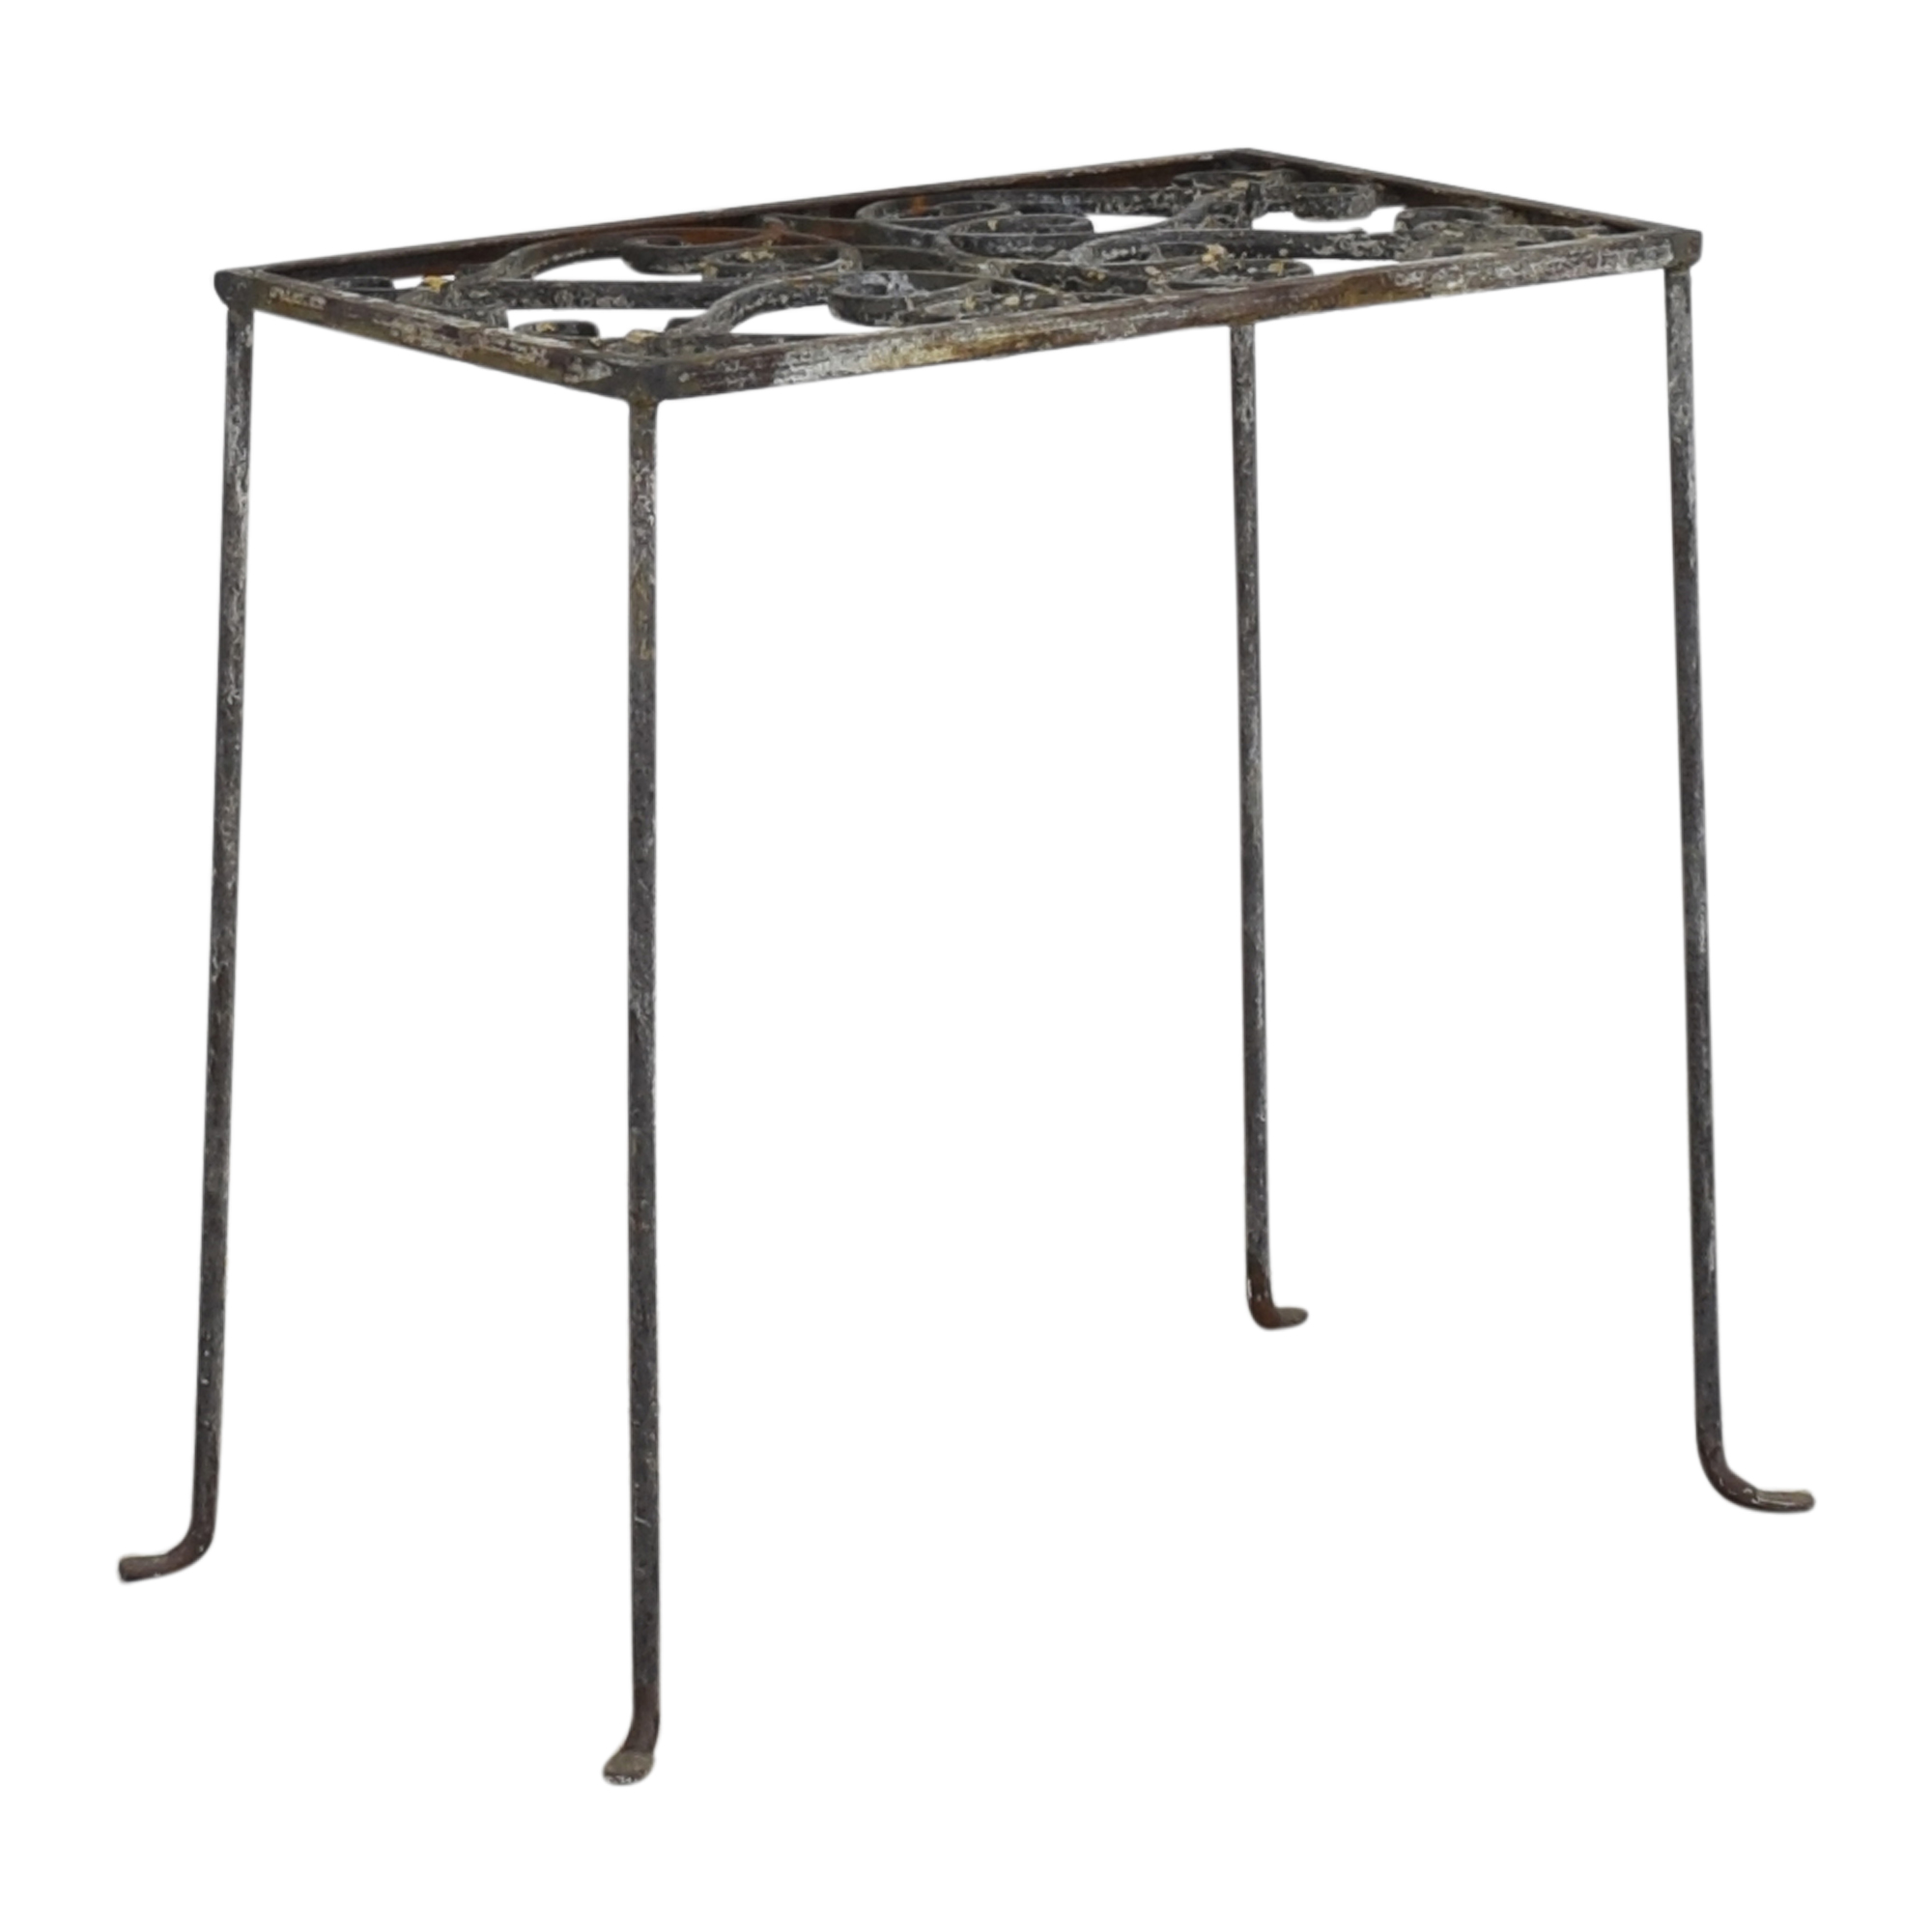 Anthropologie Decorative Accent Table Accent Tables